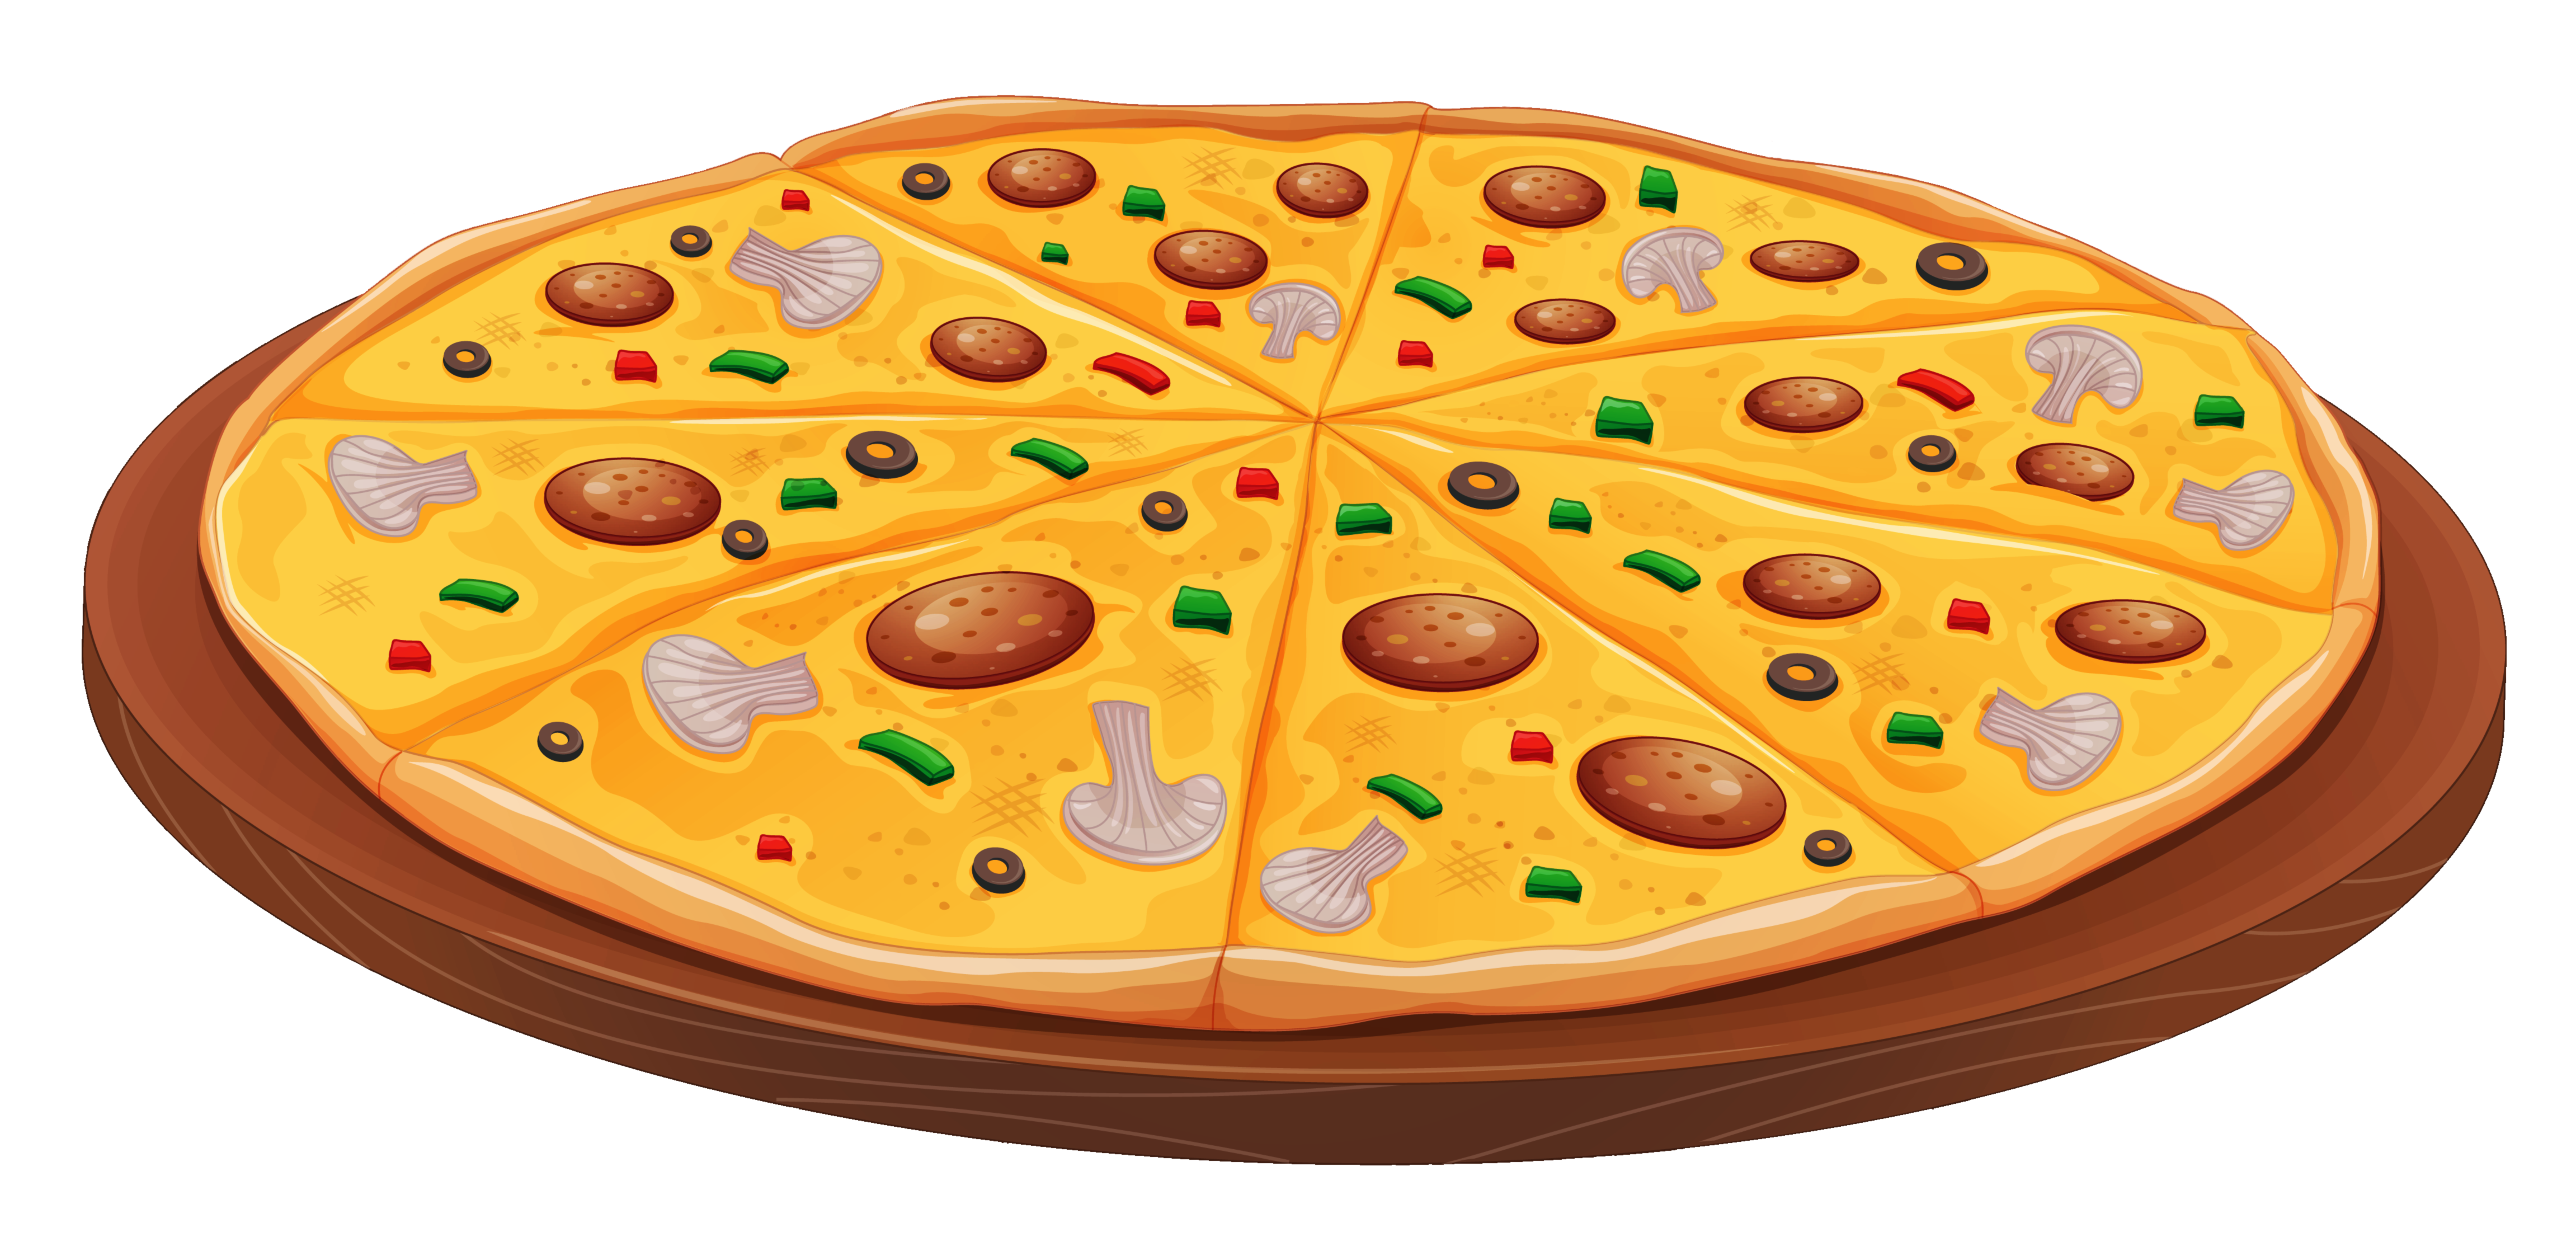 Pizza clip art png. With mushrooms clipart gallery